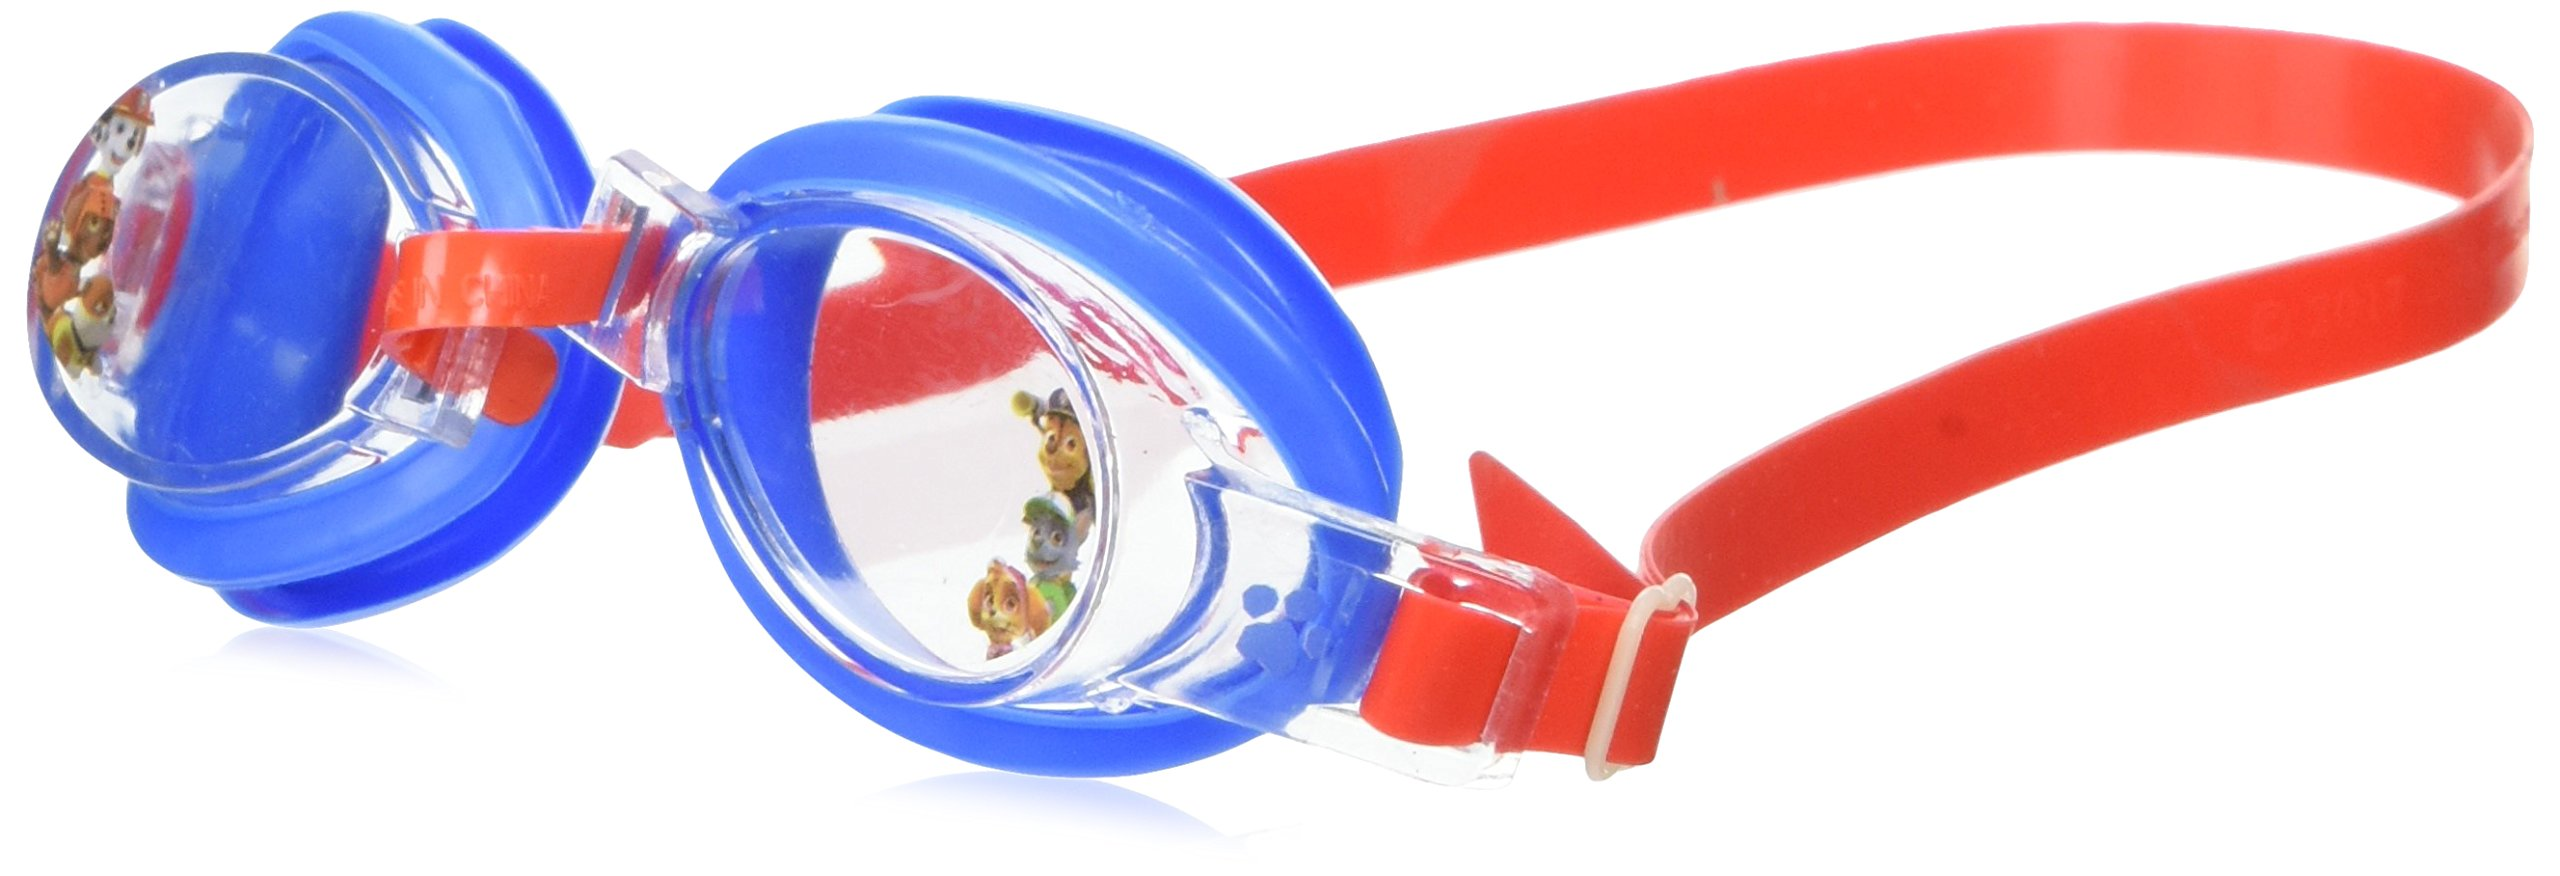 Paw Patrol Goggle 1ct [Contains 6 Manufacturer Retail Unit(s) Per Amazon Combined Package Sales Unit] - SKU# 26597PAW